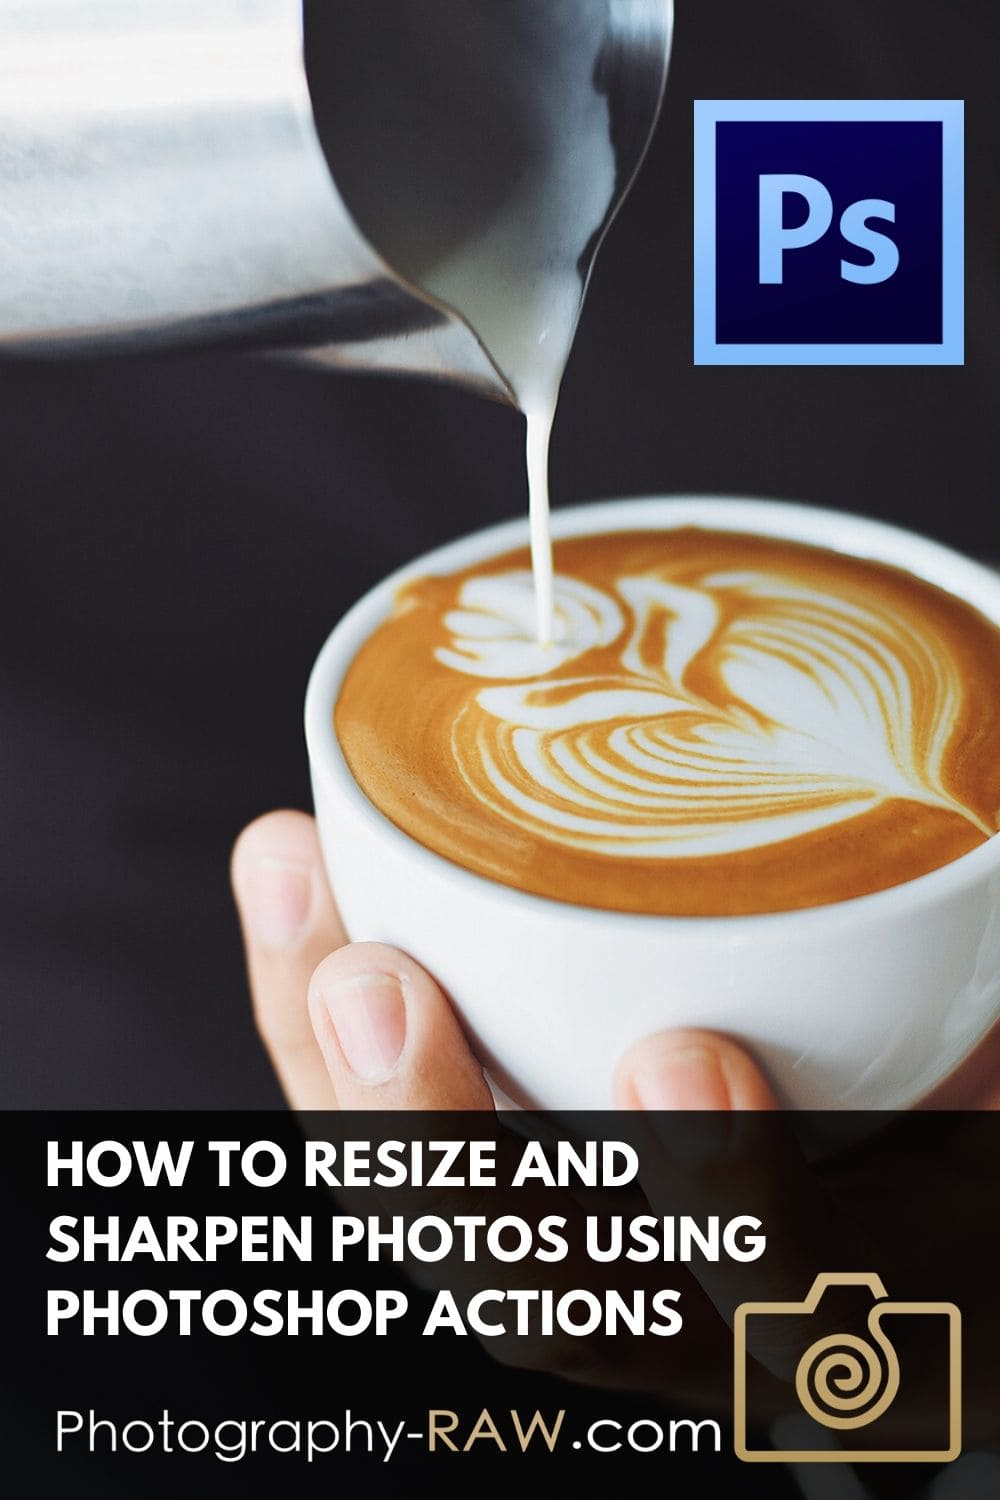 Use Photoshop Actions to Resize Images for Web Use Use a Photoshop action to speed up resizing and sharpening your images. Avoid getting soft-looking images when you use them online.